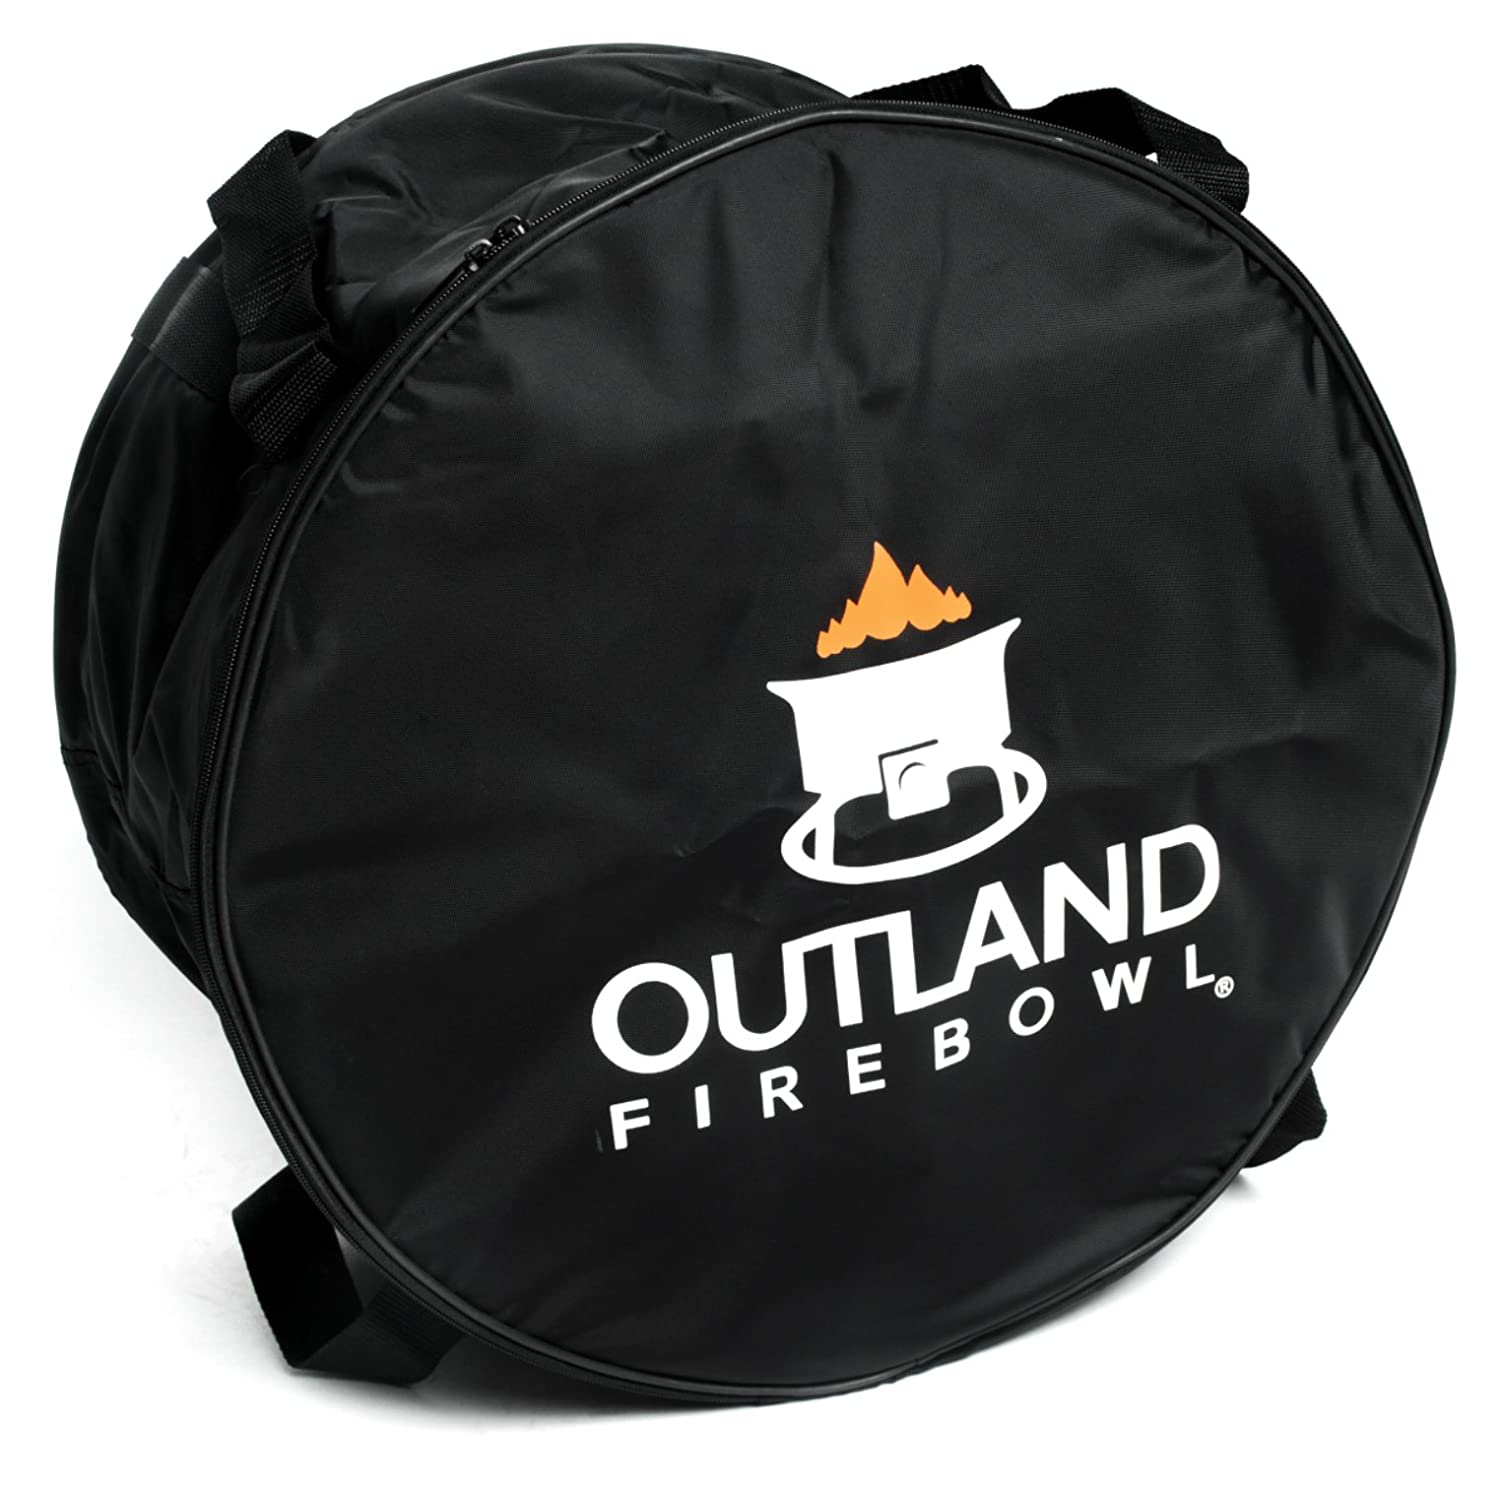 Outland Firebowl UV and Weather Resistant 762 Cypress Carry Bag, Fits 21-Inch Diameter Outdoor Portable Propane Gas Fire Pit Outland Living